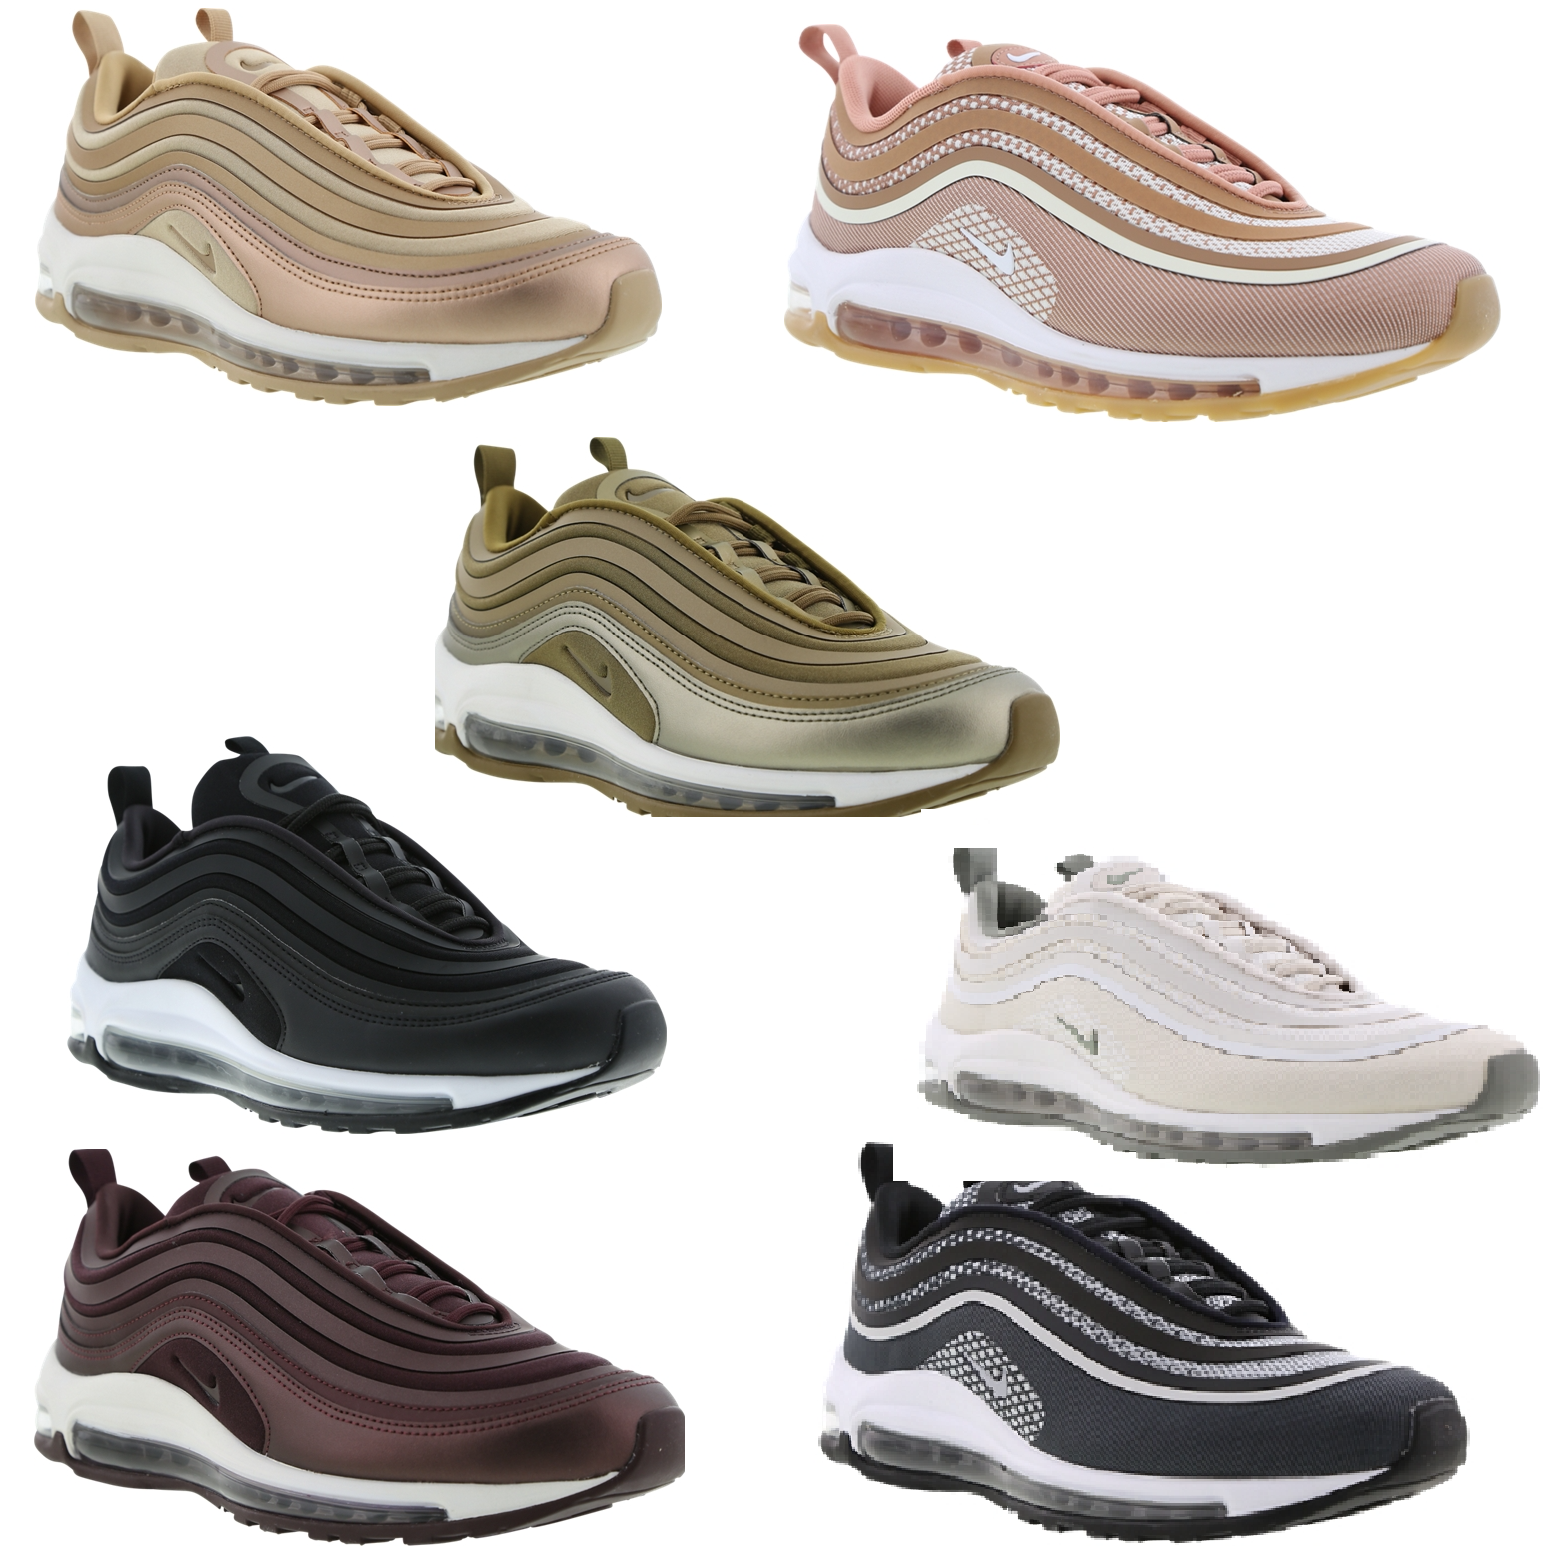 5fbcf6d674a14 Check Out All Nike Air Max 97 Ultra  17 Women s Trainers On One Page ...